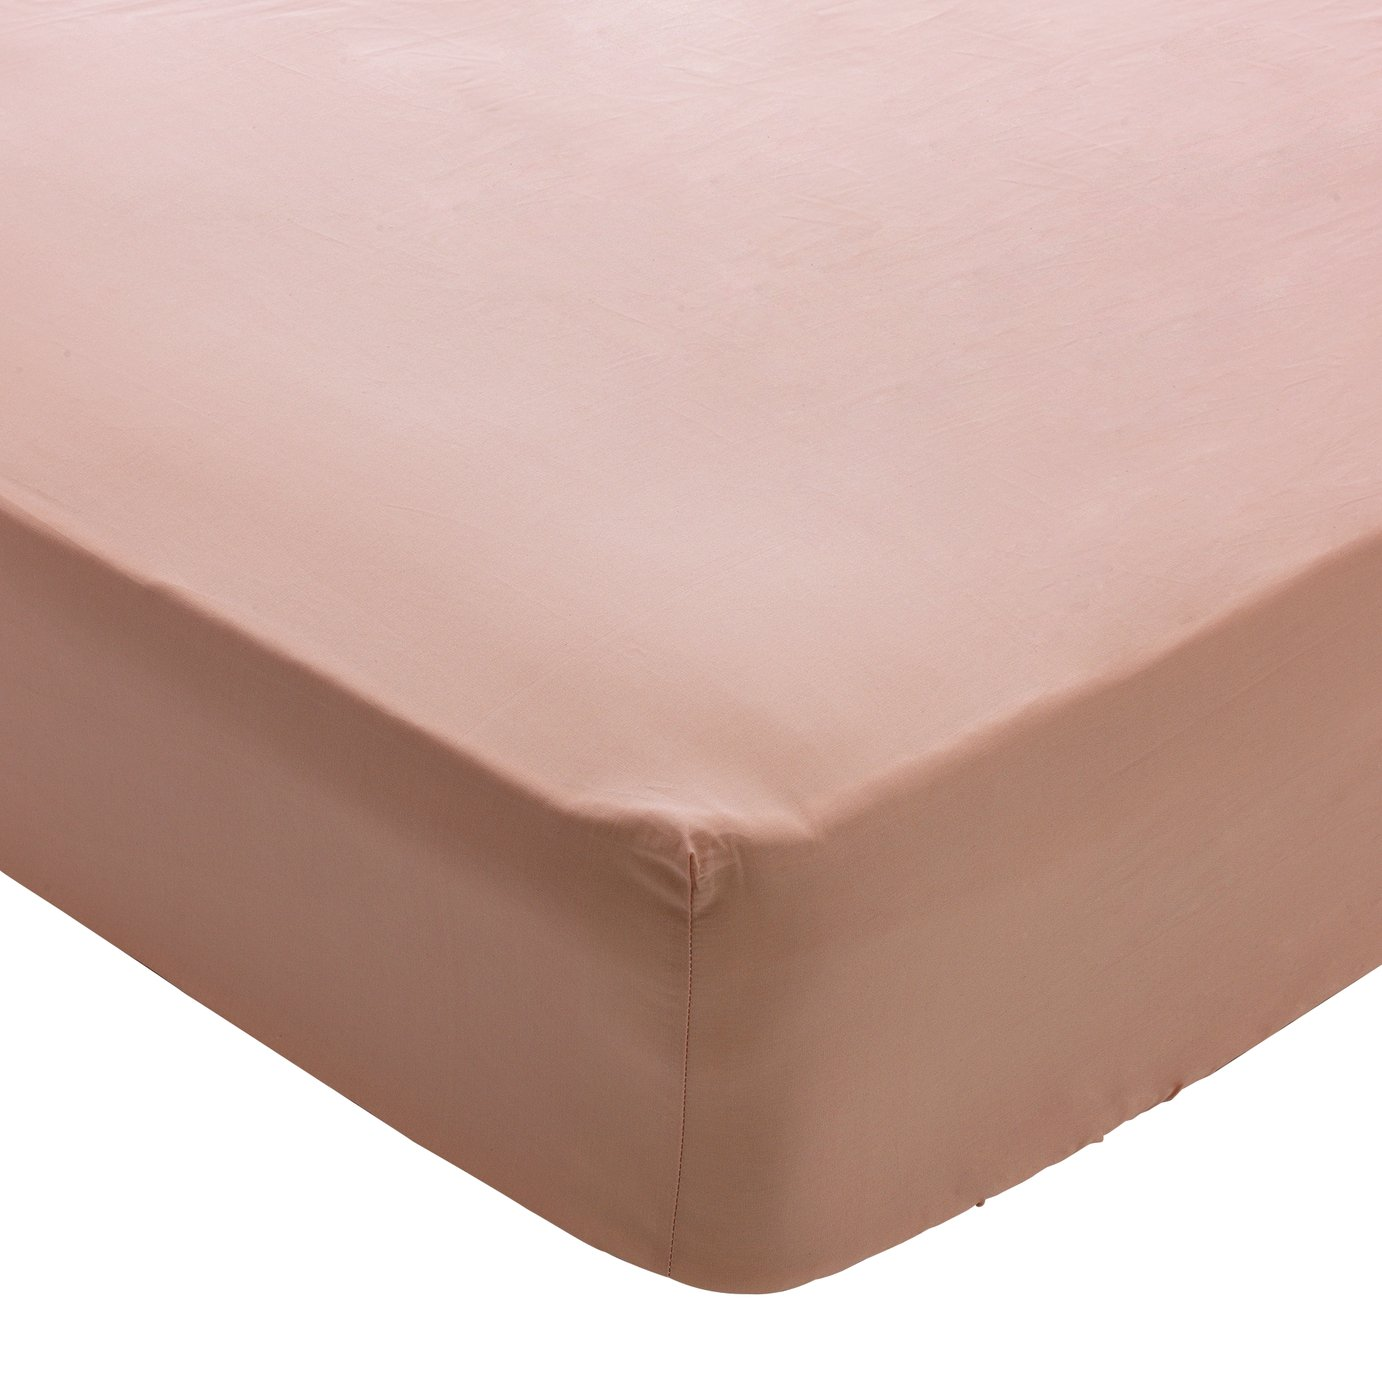 Heart of House Blush 200 TC Fitted Sheet - Single